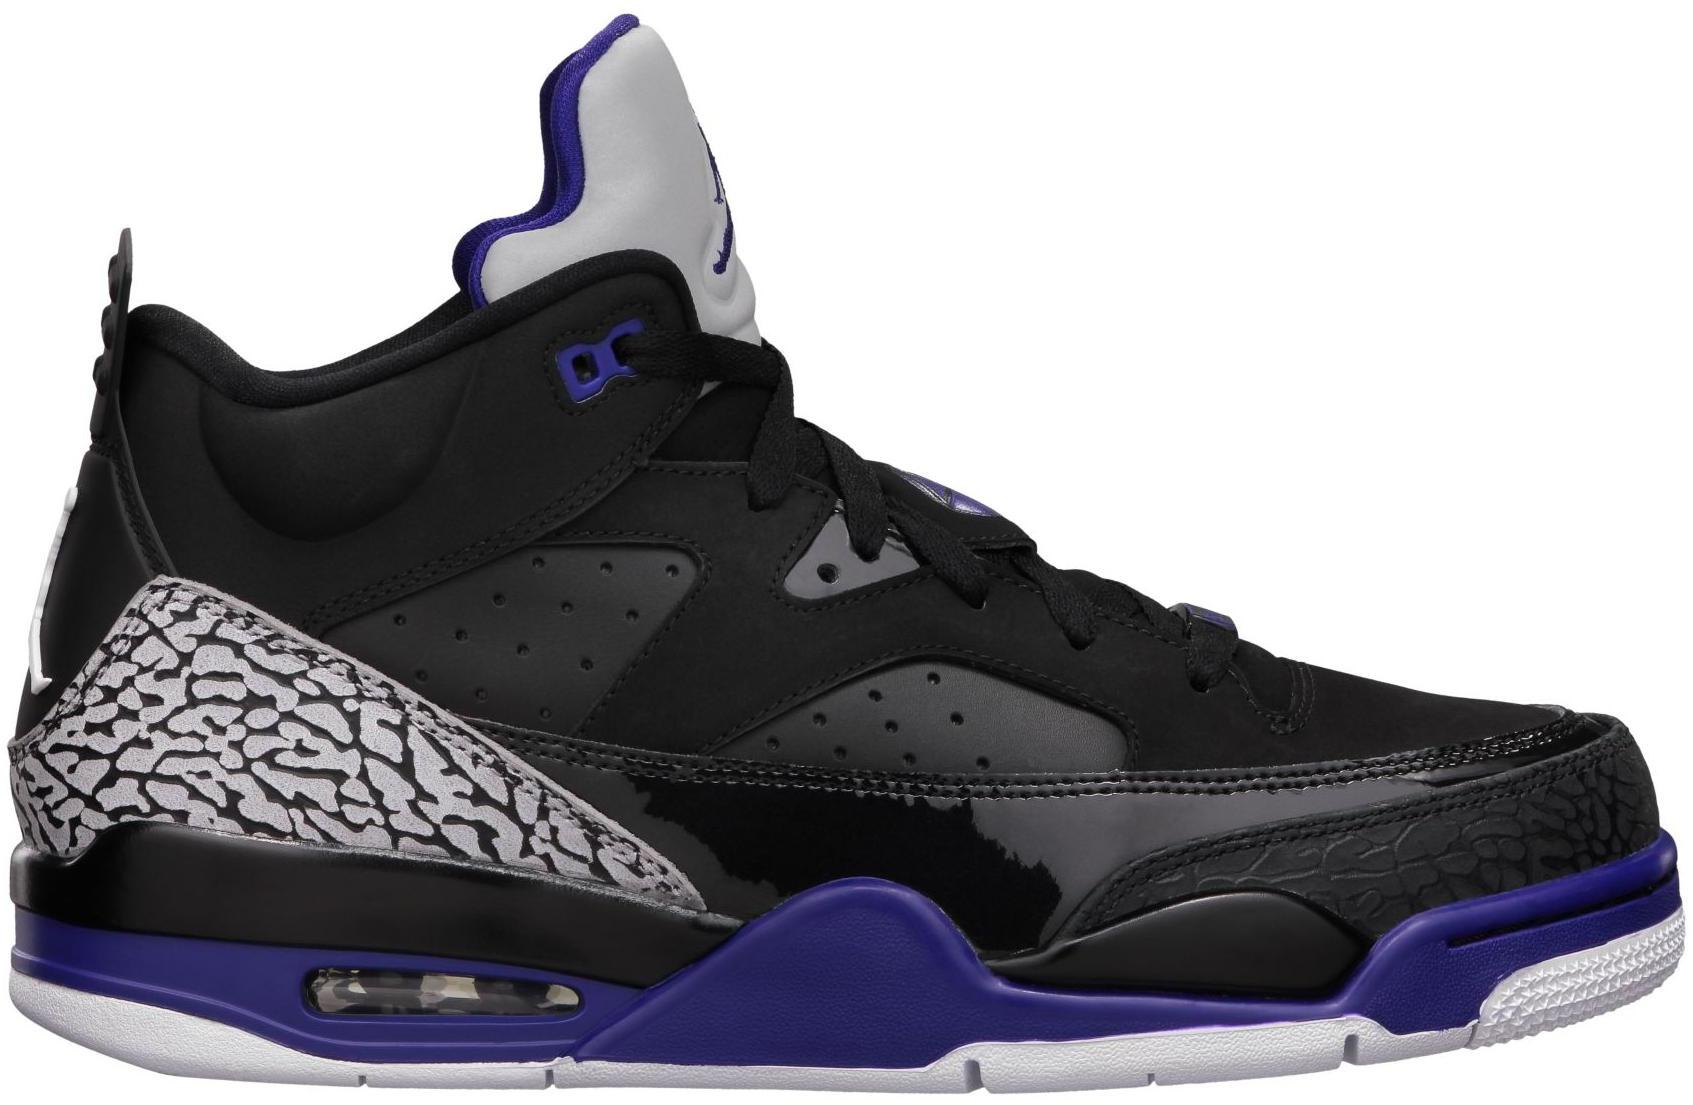 newest 84272 24041 ... discount code for jordan son of mars low black grape 47535 99469 ...